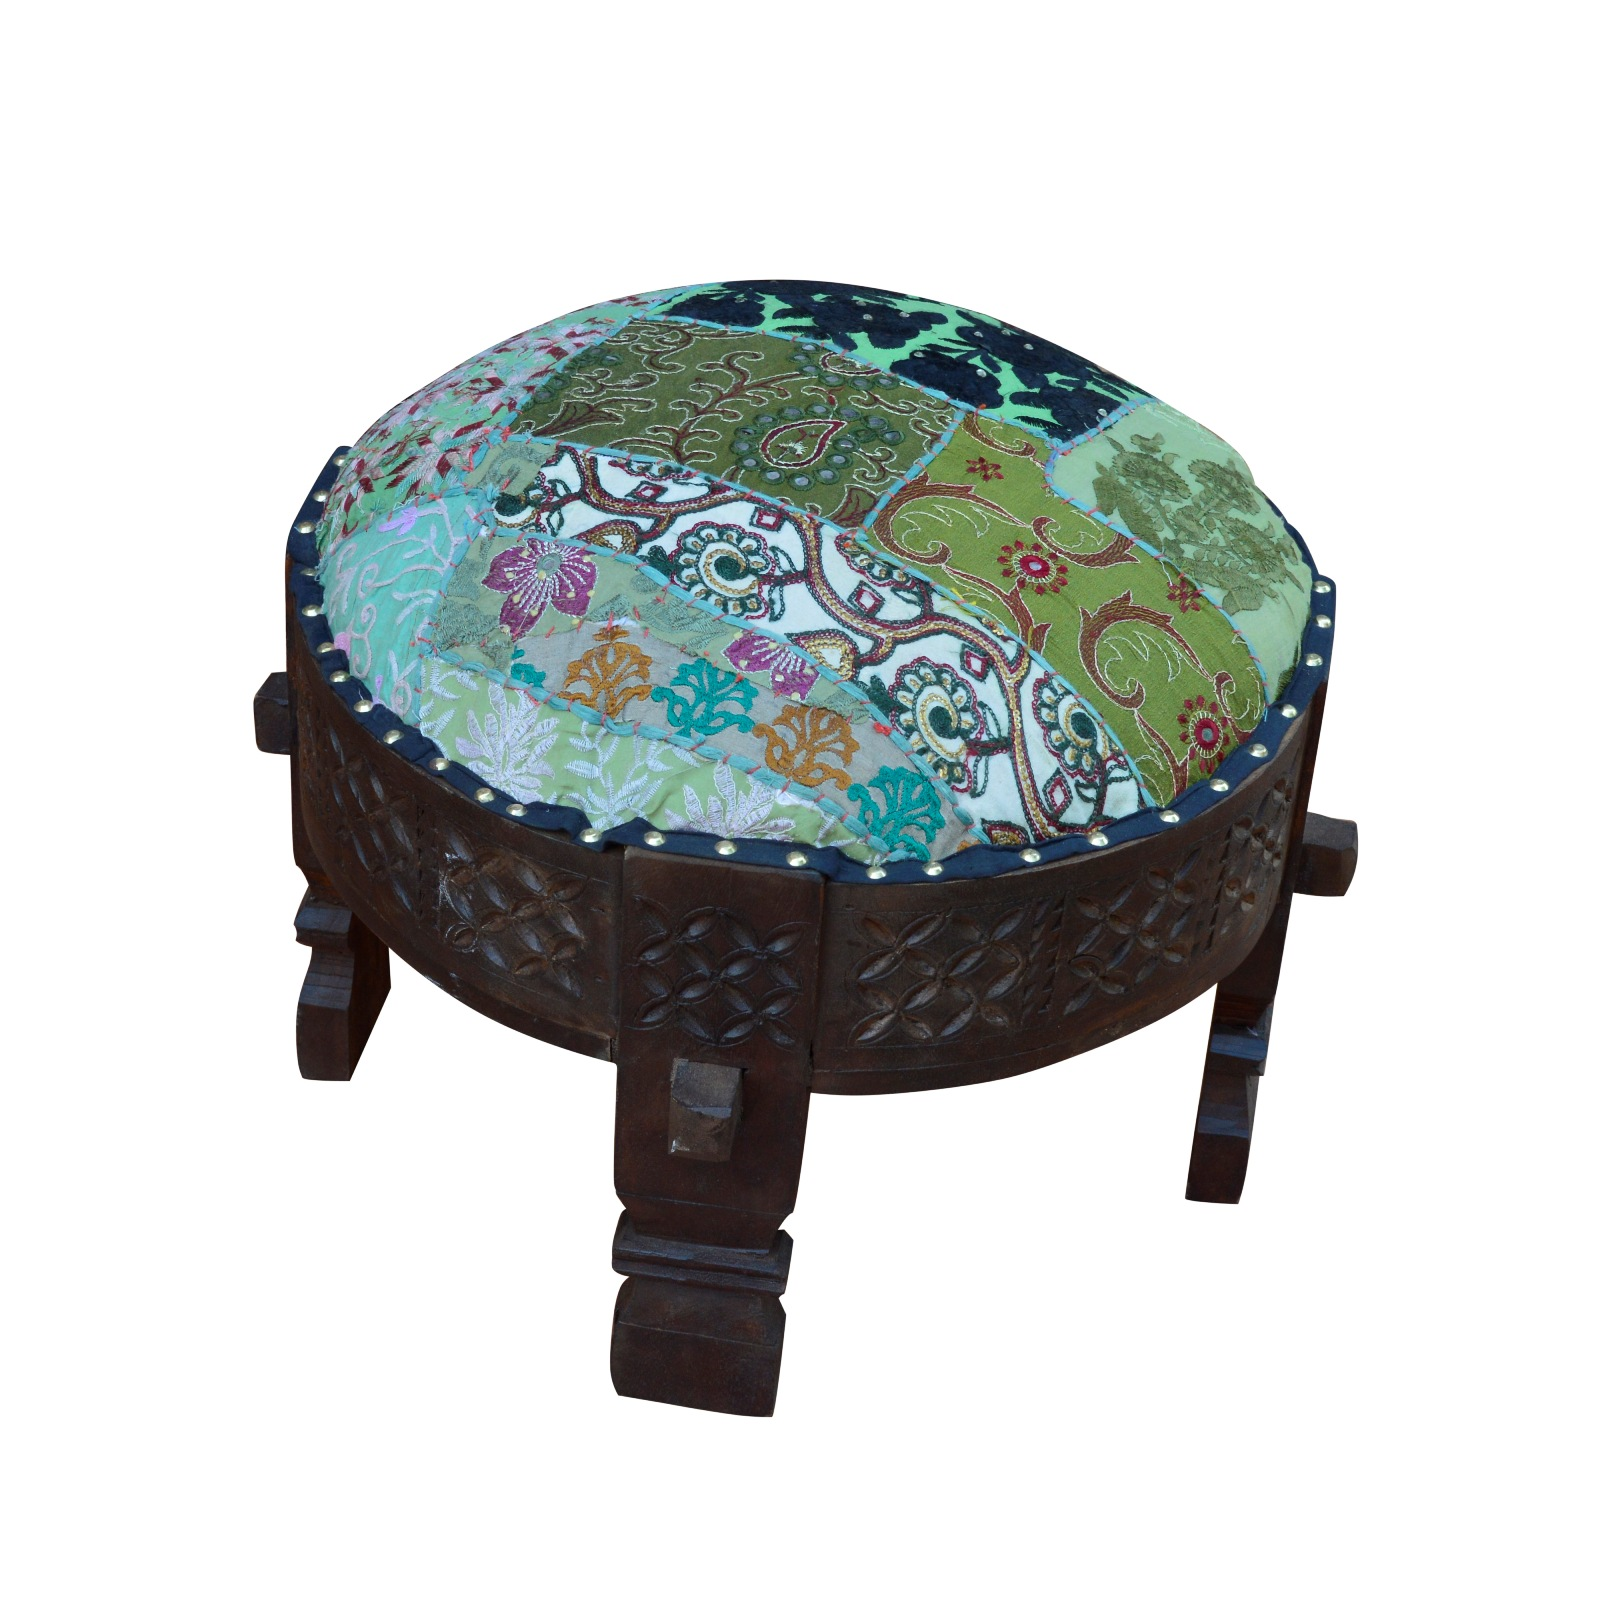 WOODEN CARVING ROUND STOOL WITH PROCESS